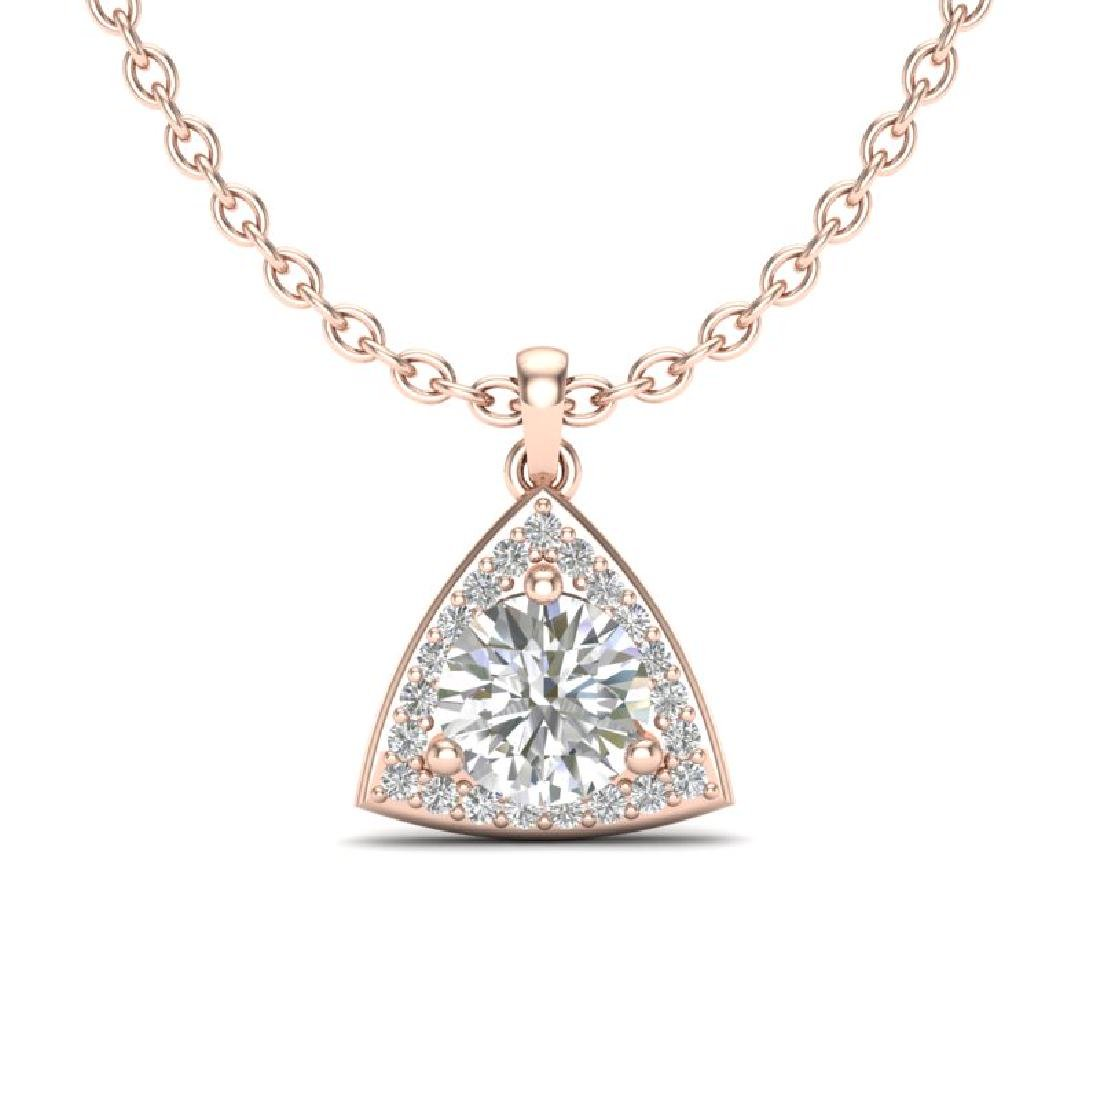 1.50 CTW VS/SI Diamond Necklace 14K Rose Gold